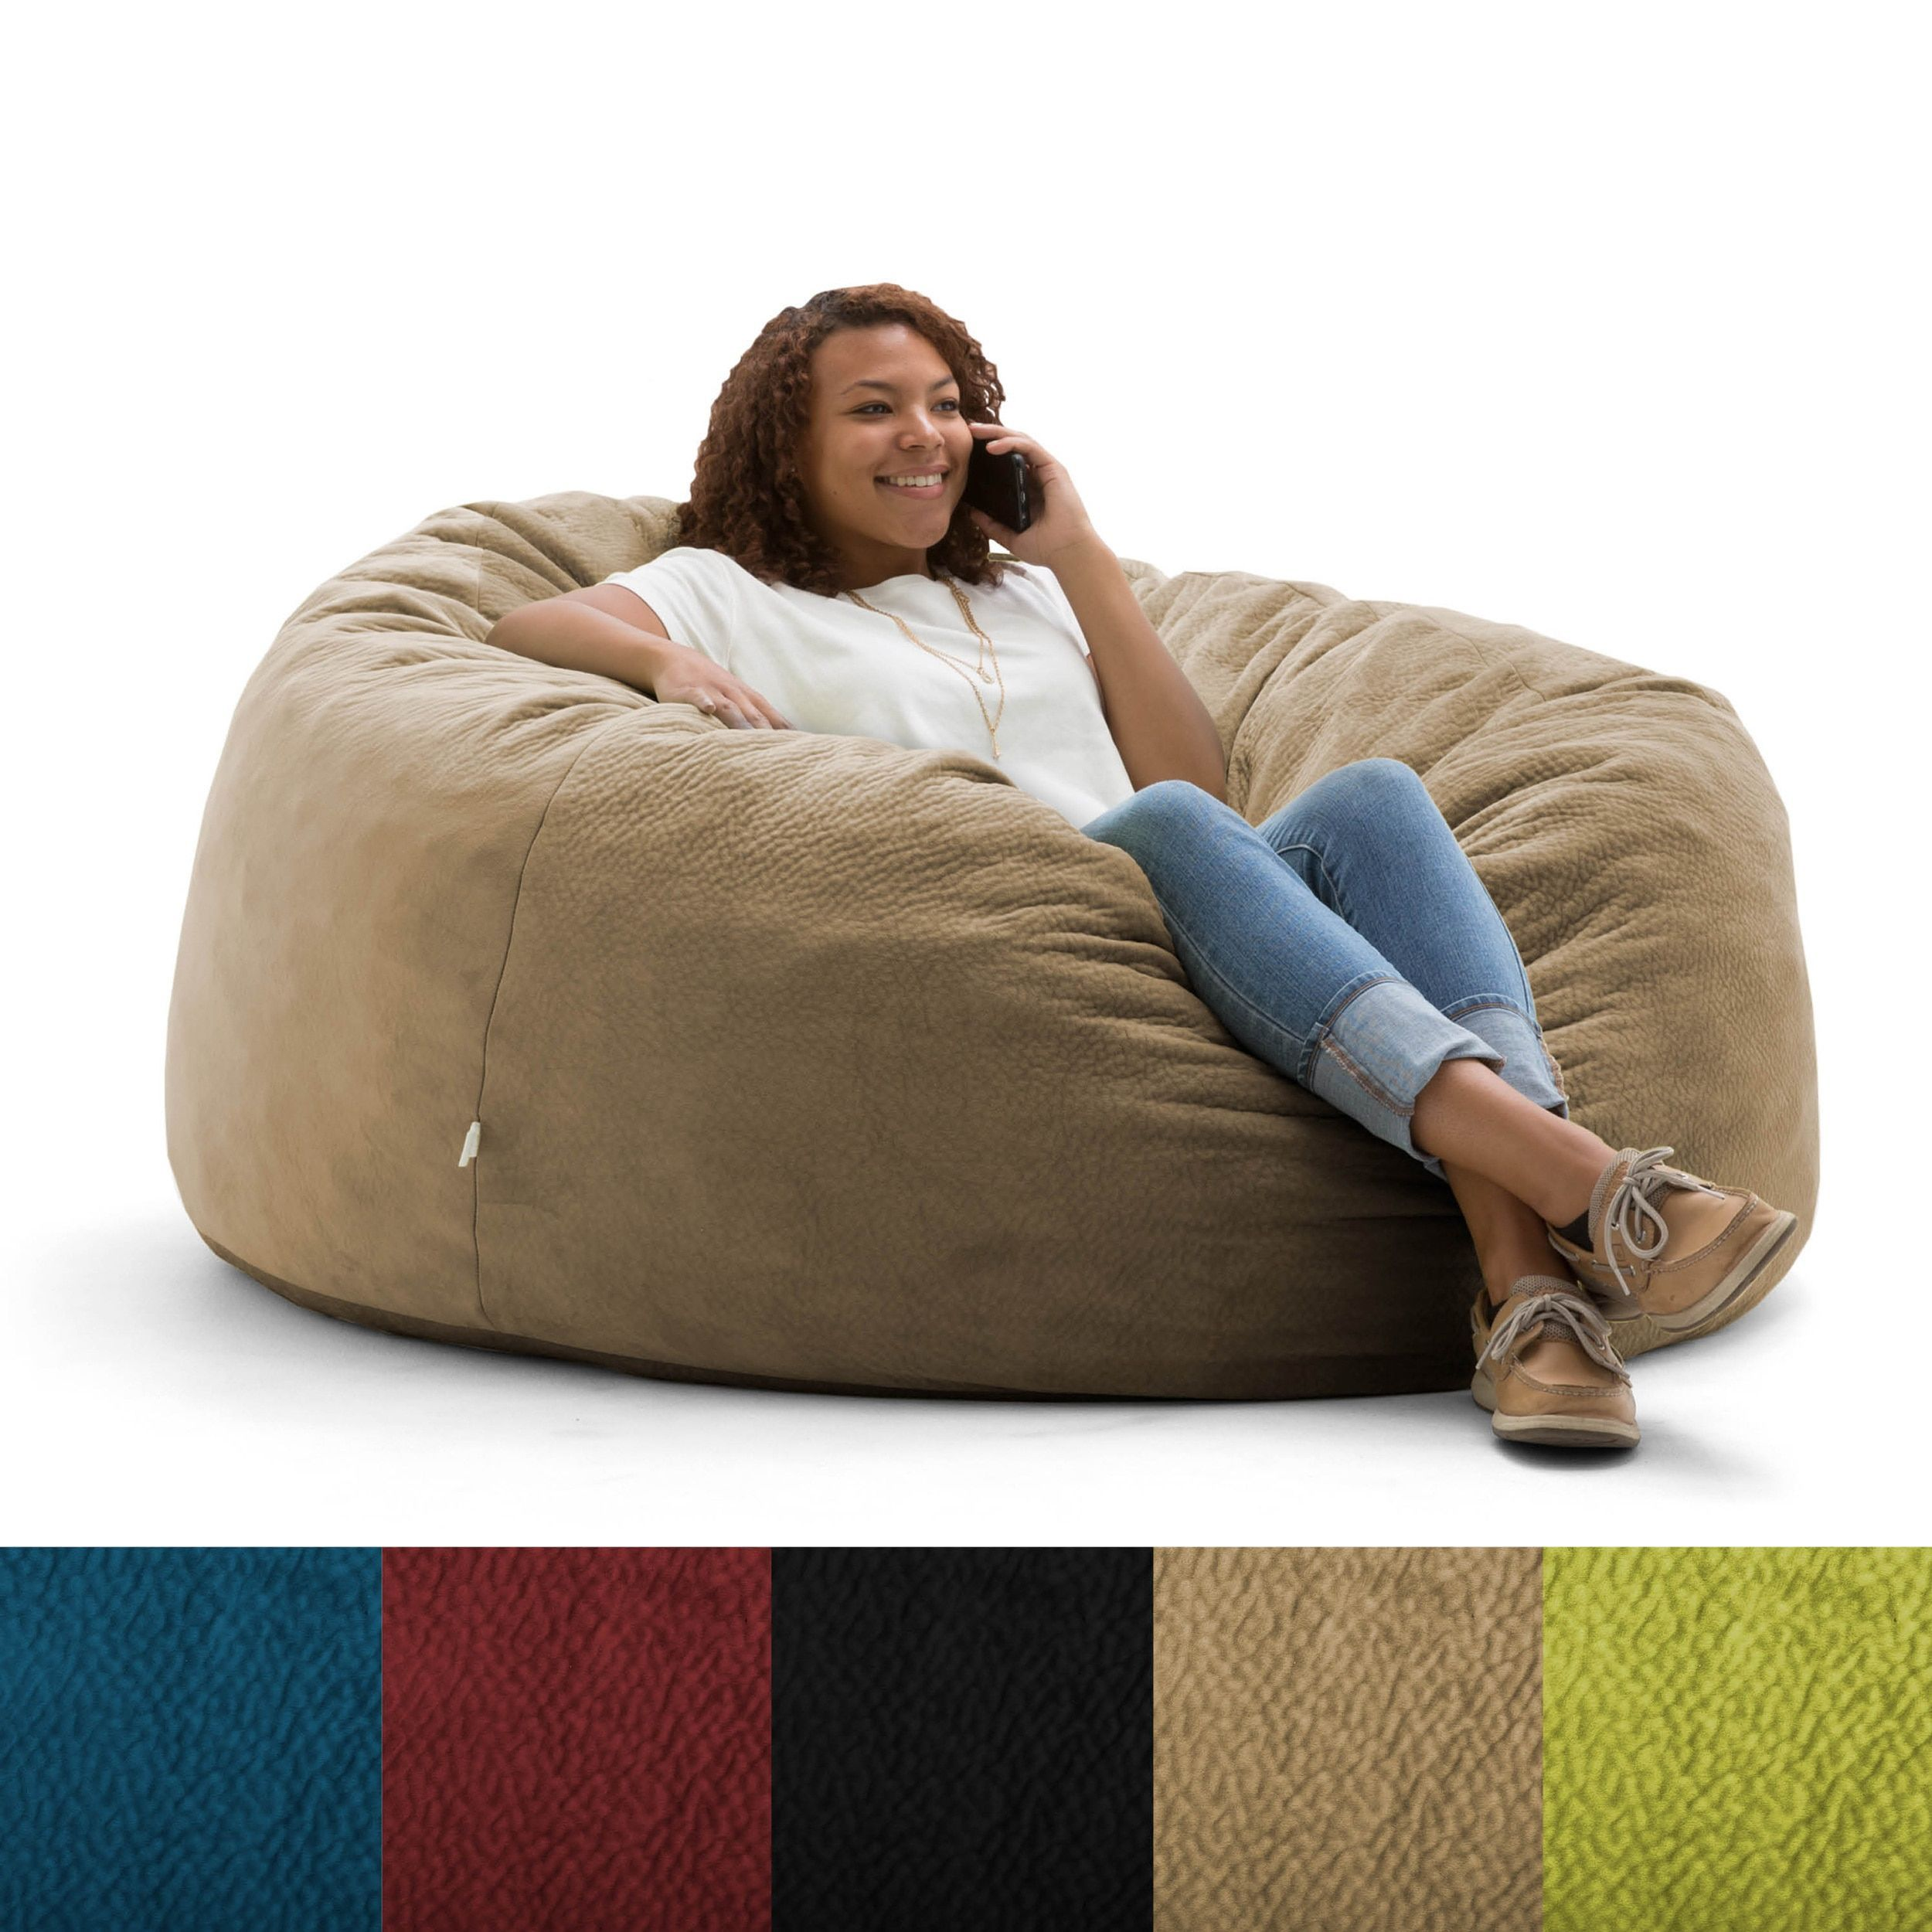 Marvelous Fufsack Big Joe Lux Textured Memory Foam Bean Bag Chair Dailytribune Chair Design For Home Dailytribuneorg